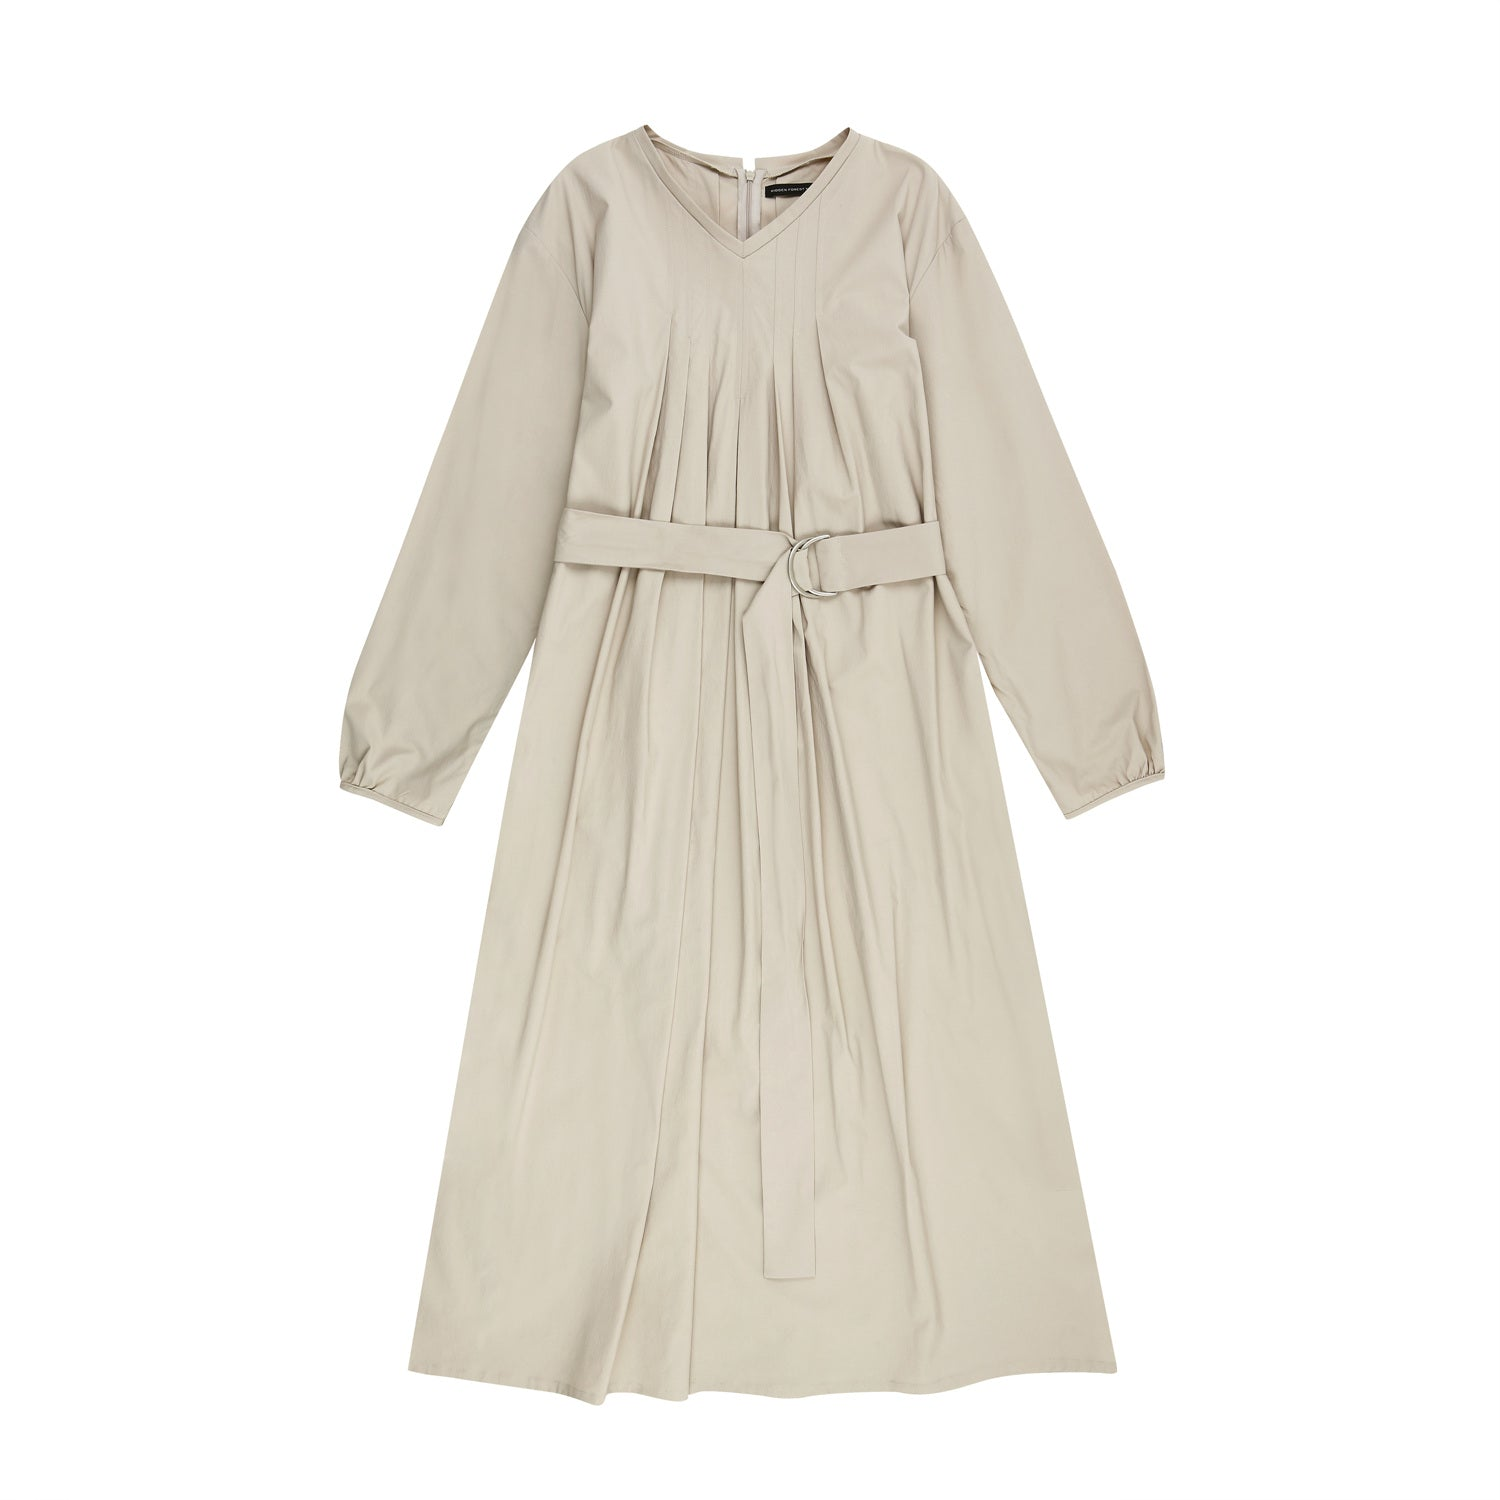 V-neck dress - Beige